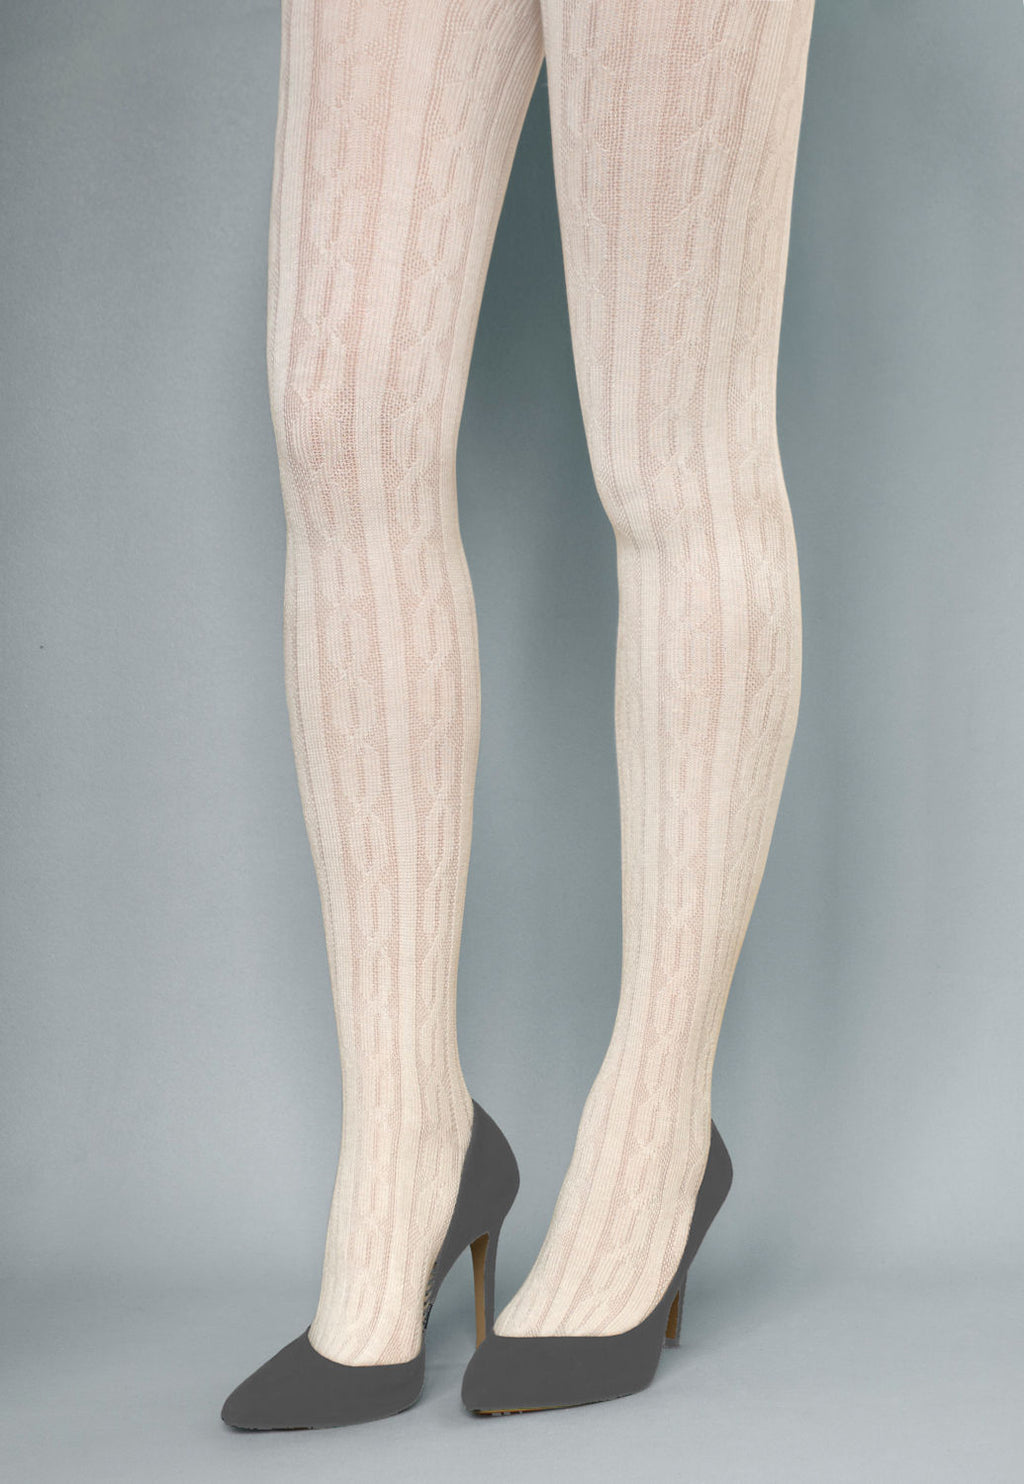 Linda Braided Ribbed Cable Tights by Veneziana in white ivory cream